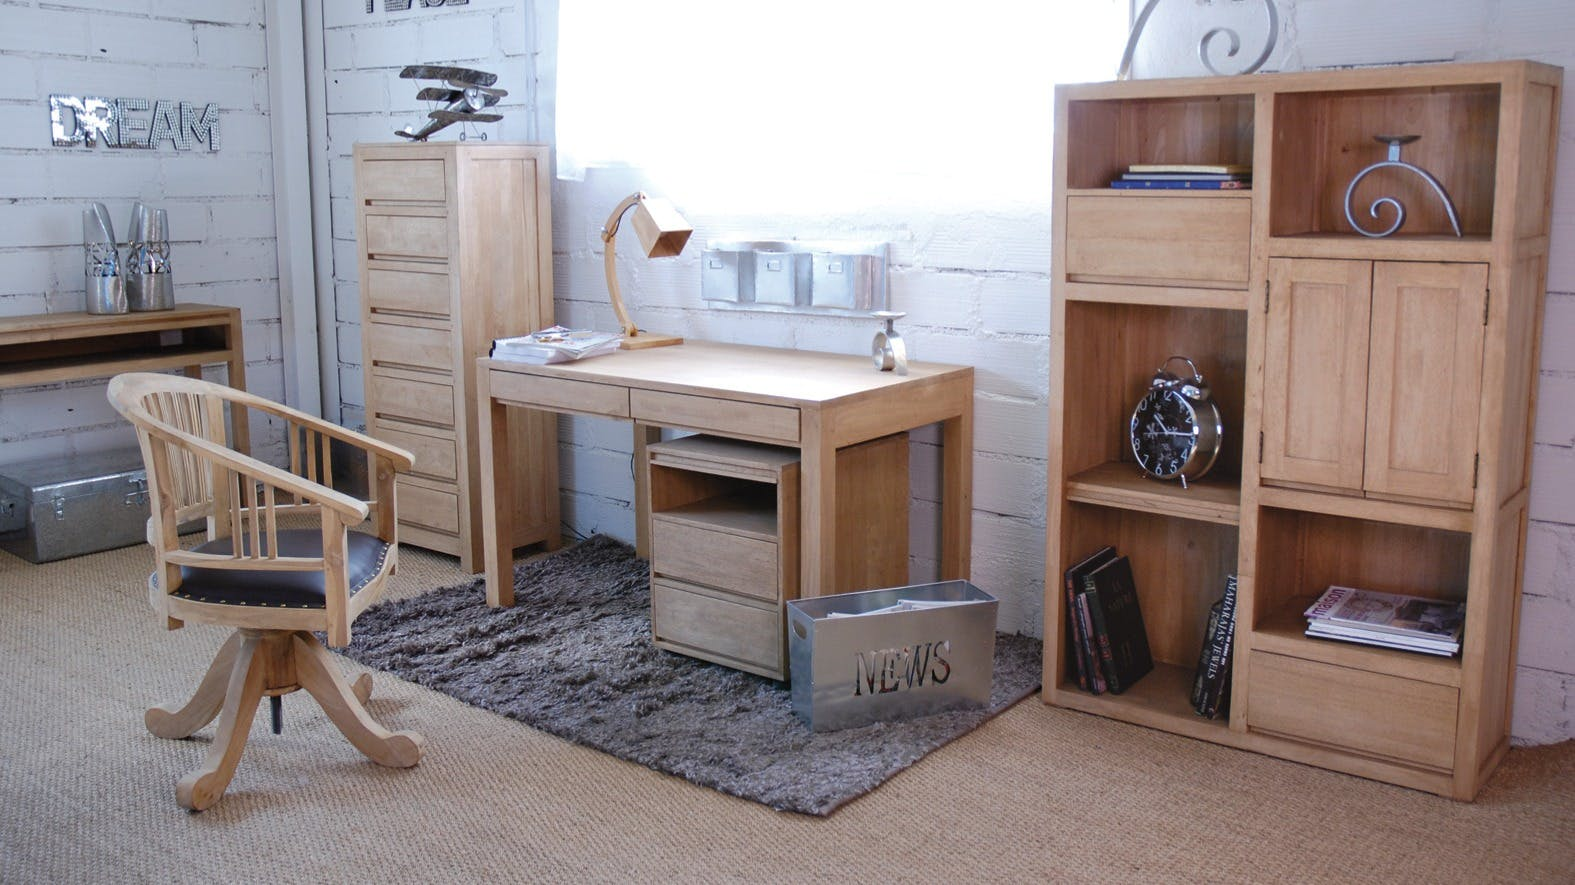 Meubles style scandinave